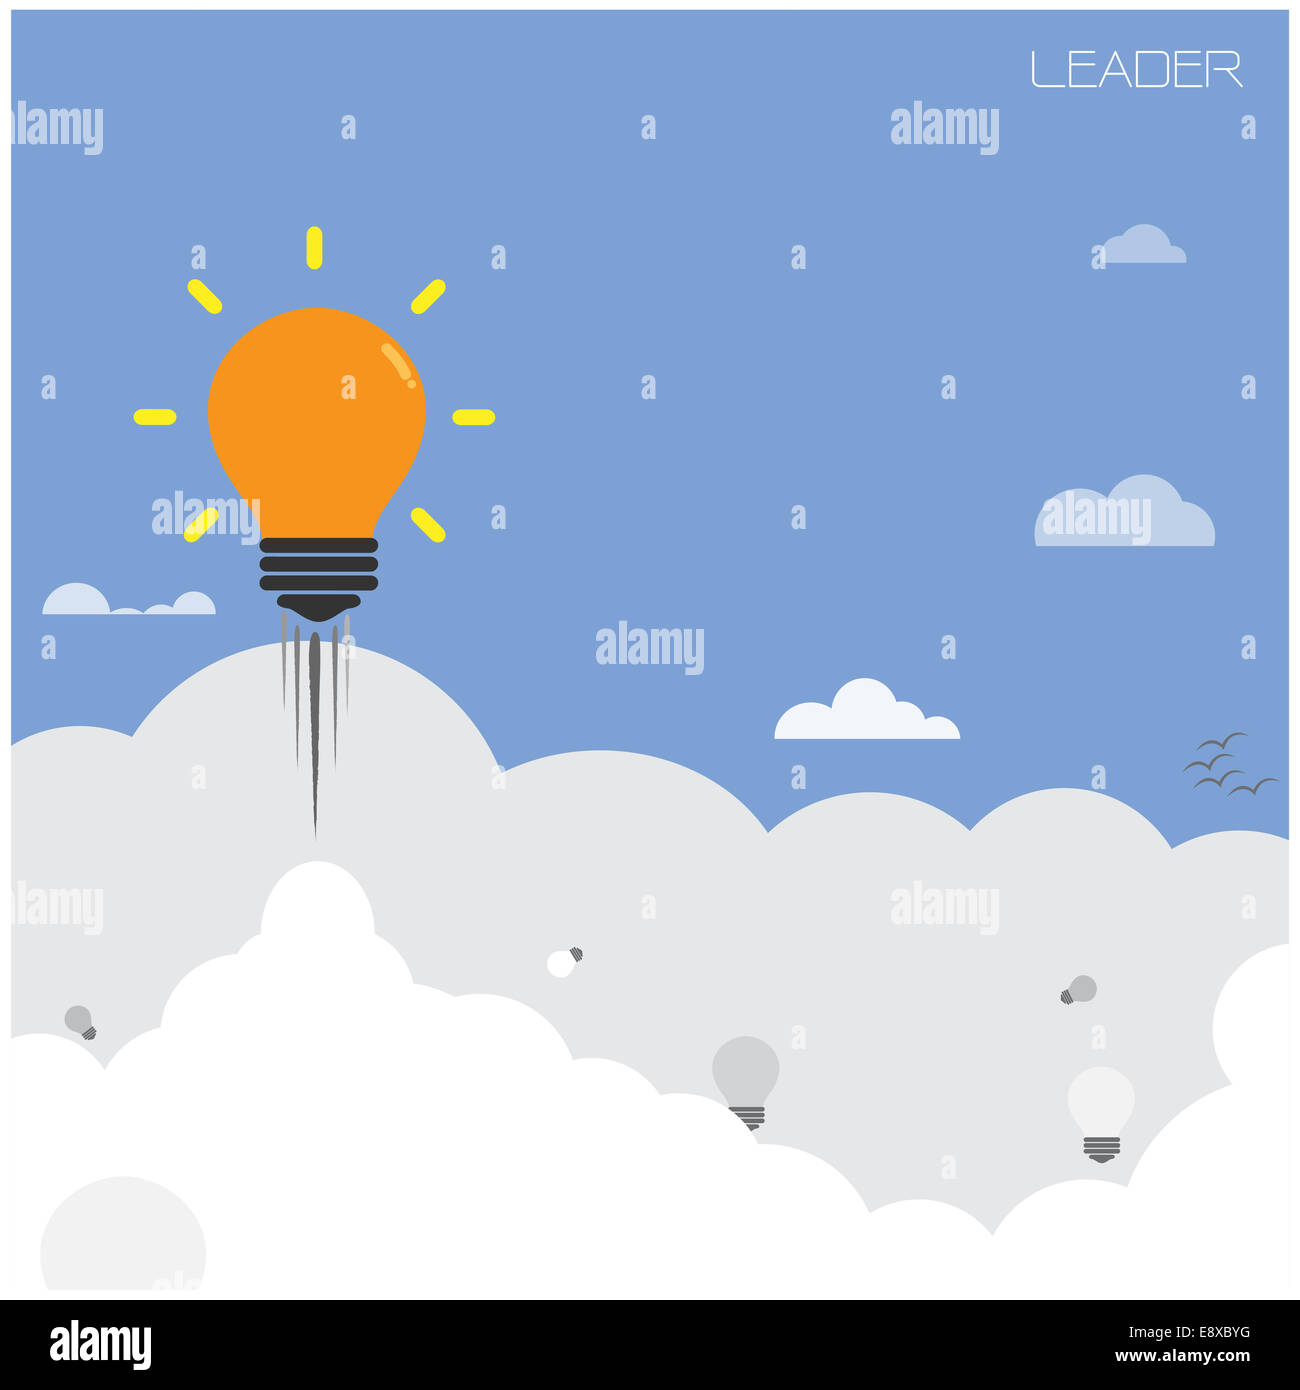 Poster design education - Stock Photo Creative Light Bulb With Blue Sky Background Design For Poster Flyer Cover Brochure Leader And Education Concept Business Idea